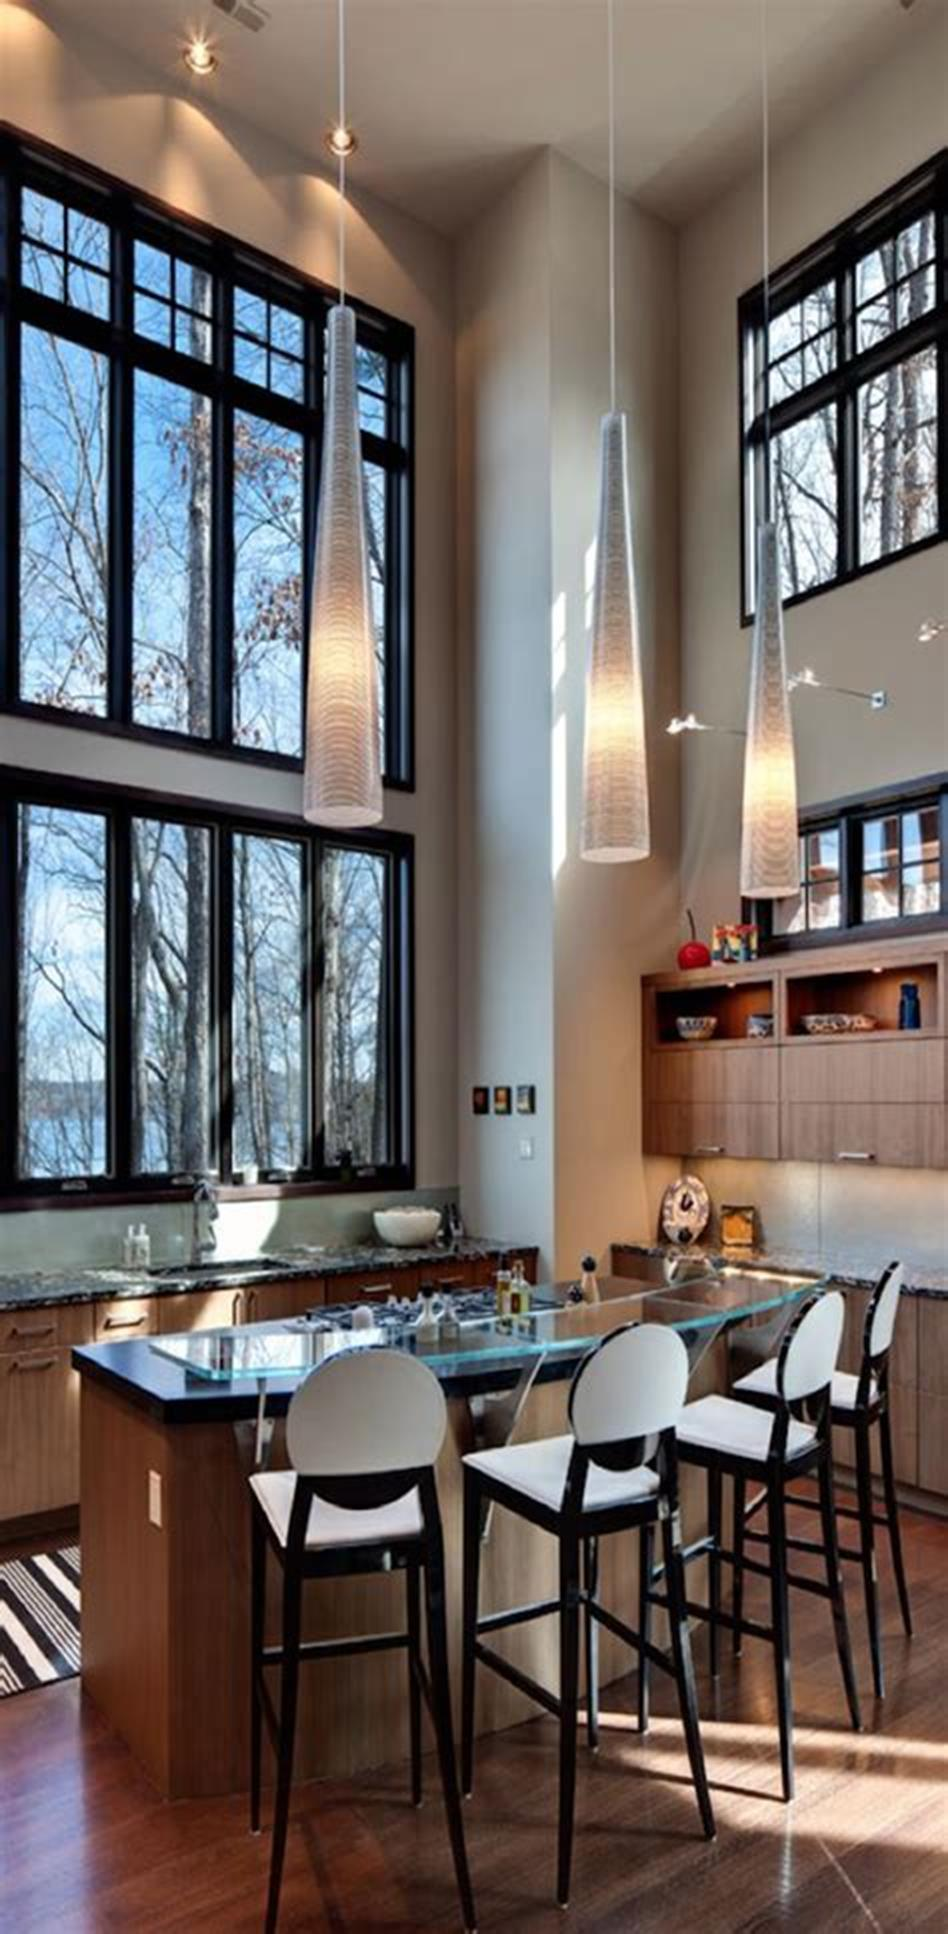 35 Stunning Contemporary Kitchen Design Ideas Youll Love 10